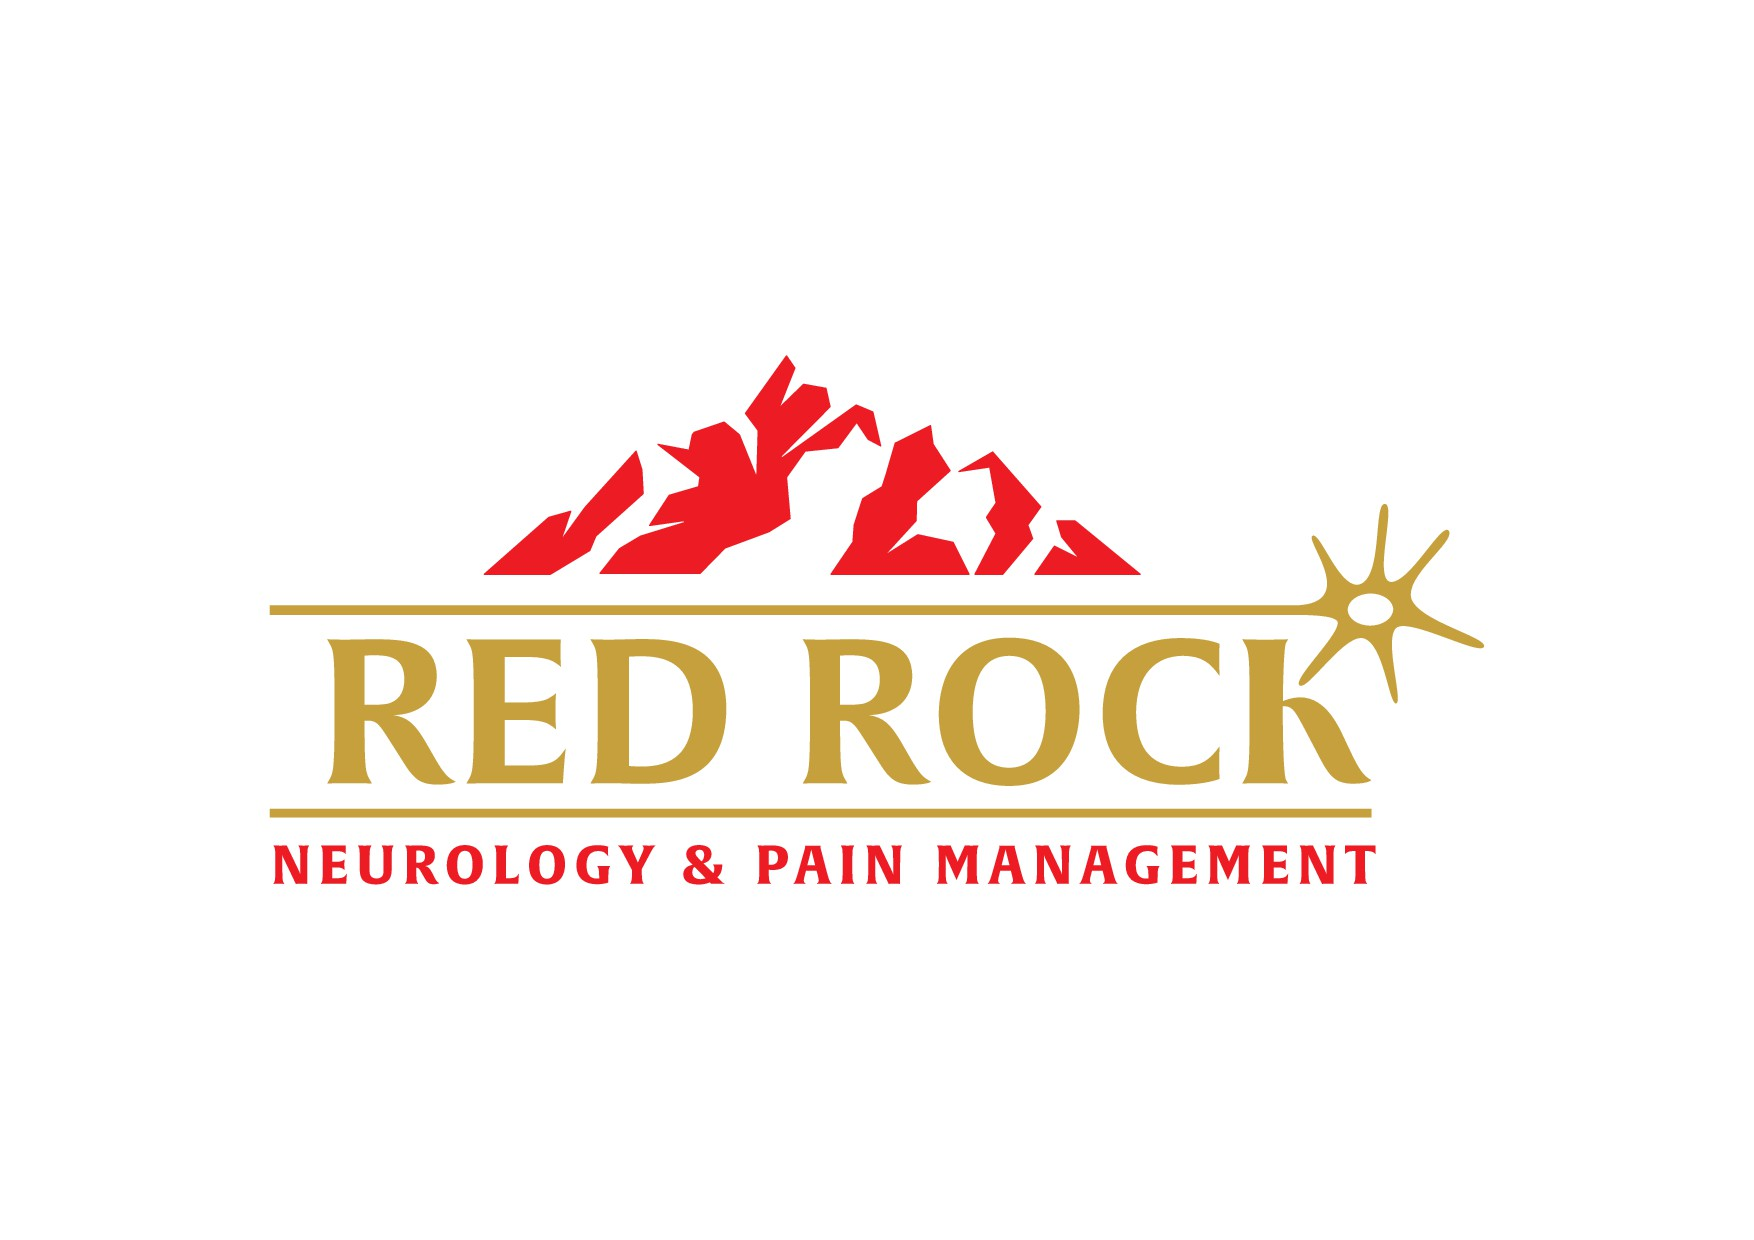 medical logo for neurology and pain